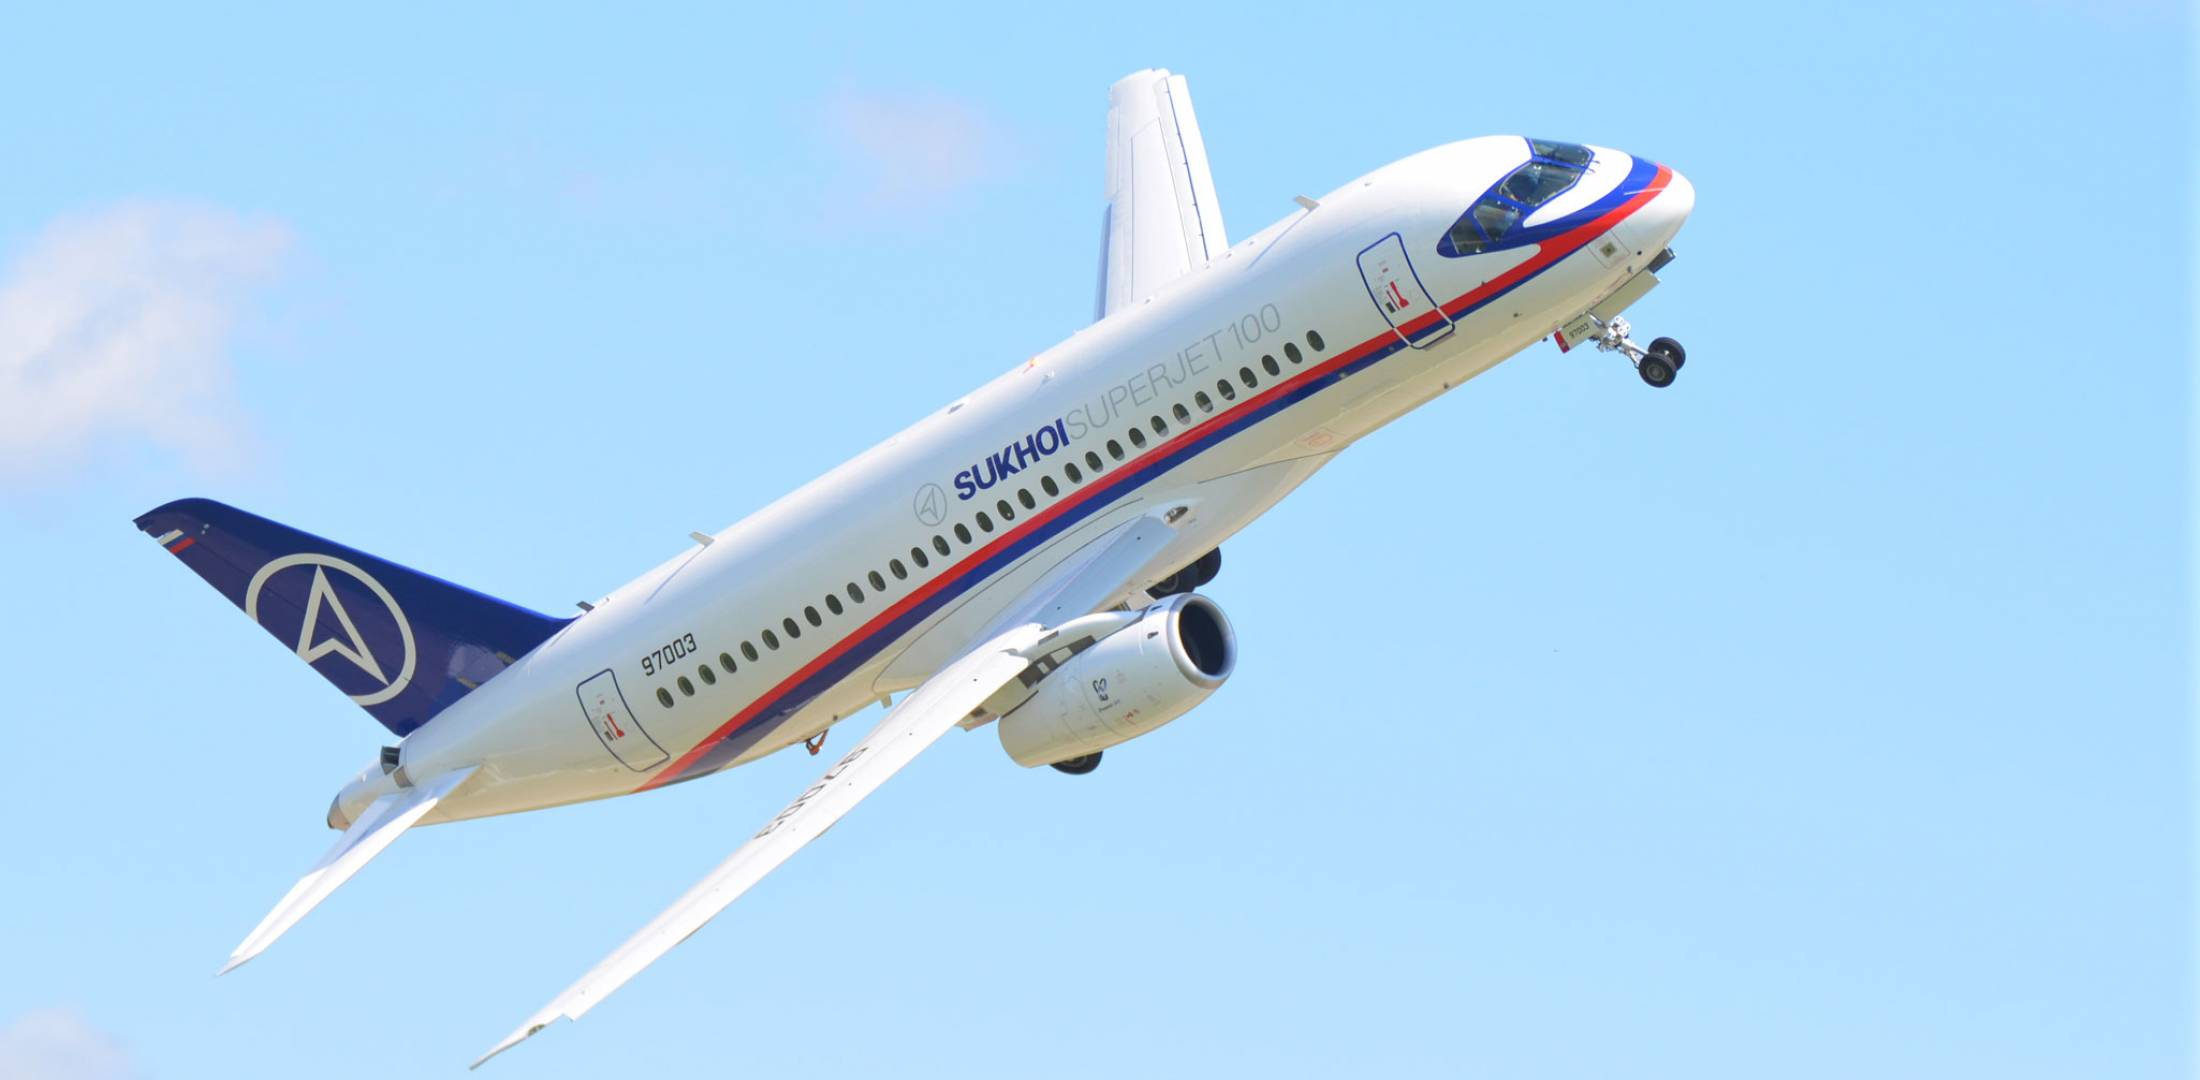 By shaving the amount of American parts and components to less than 10 percent, Russia's Sukhoi can market Superjets to Iran without the need for a sign-off ...